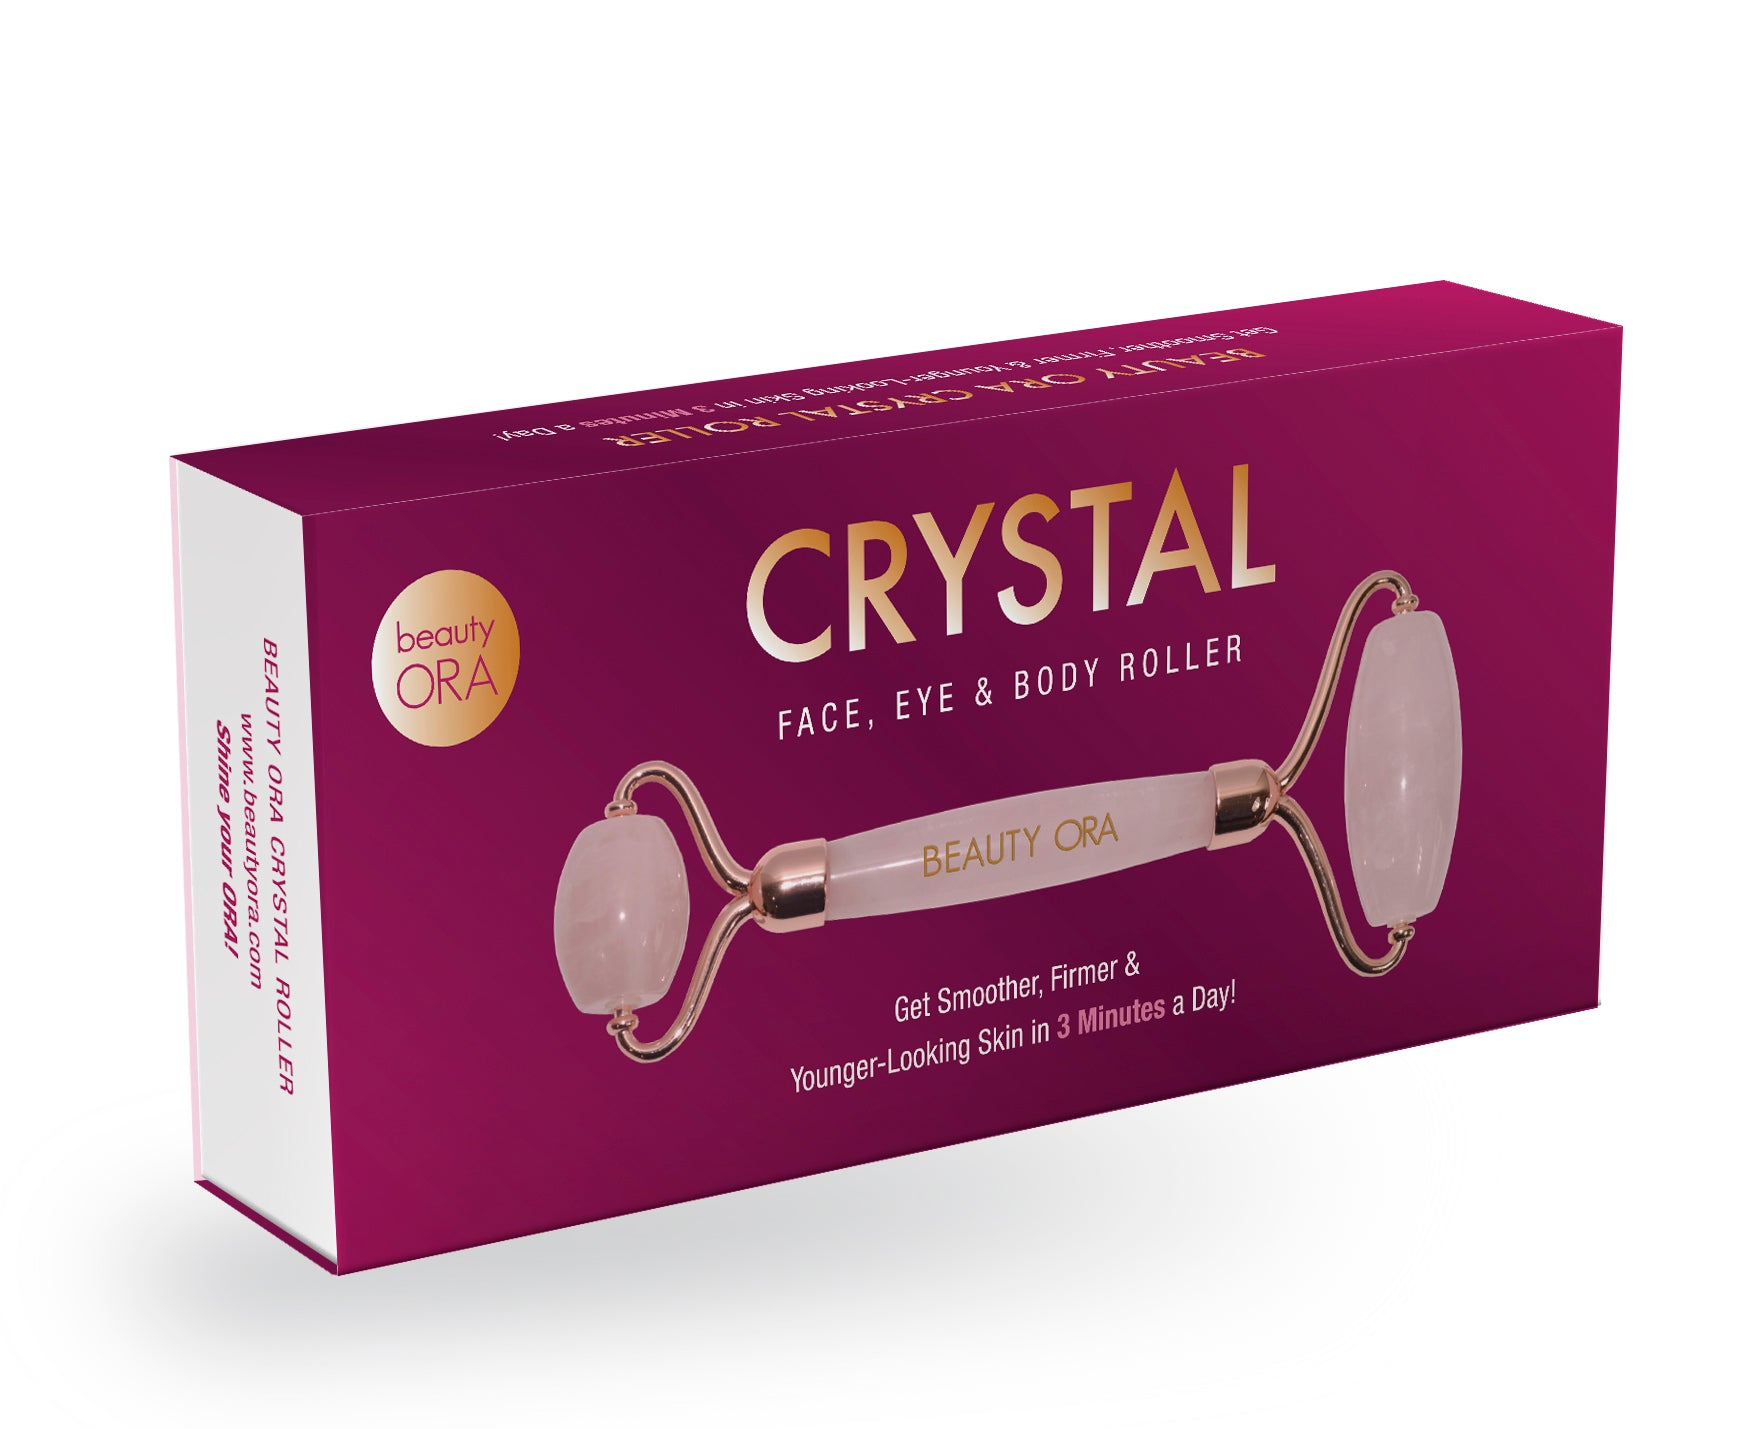 ORA Crystal Face, Eye & Body Roller